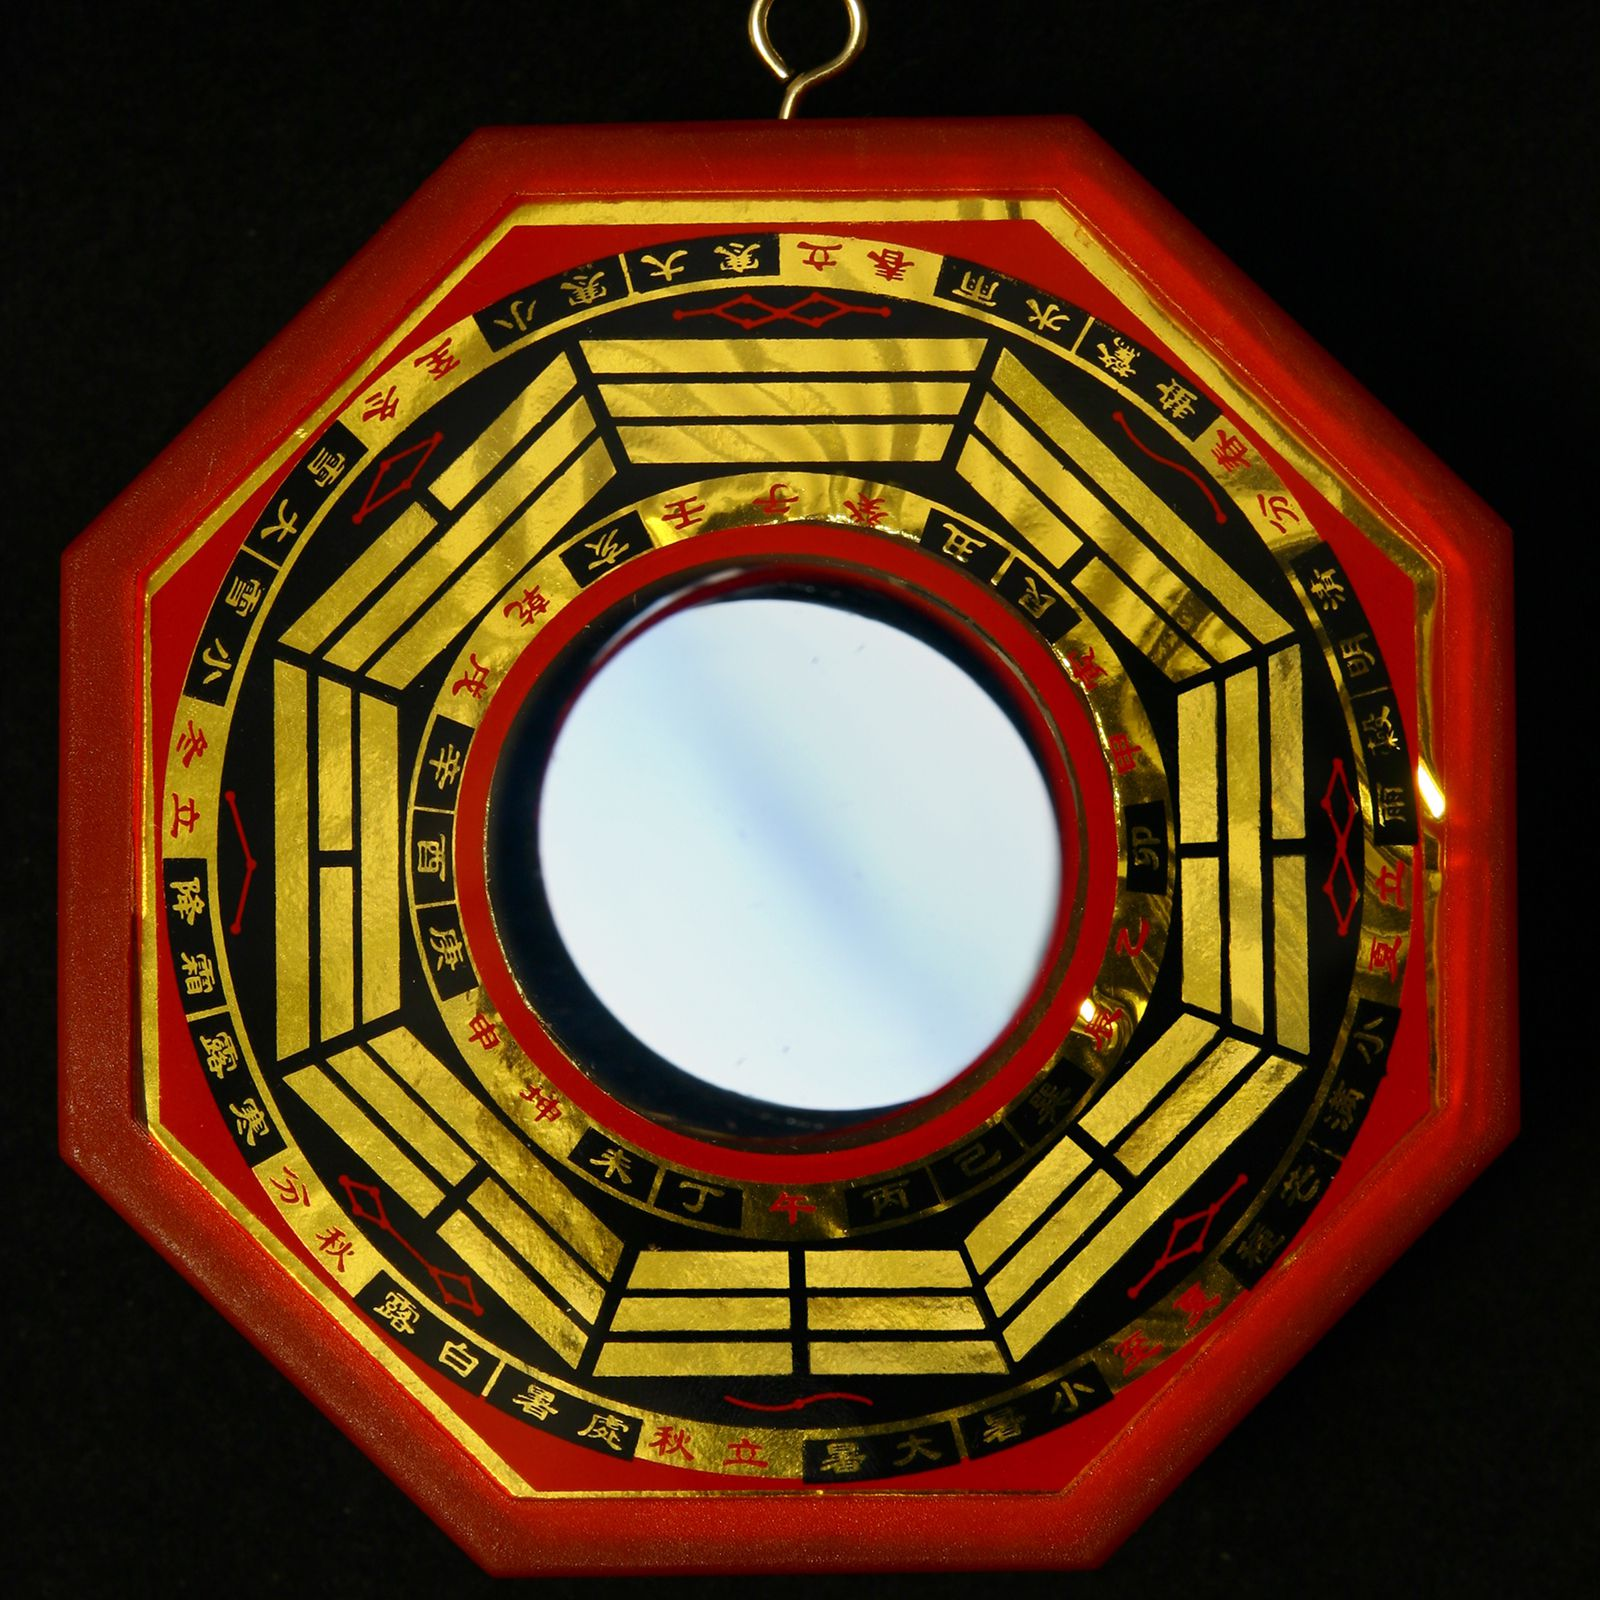 CHINESE FENG SHUI BRASS BA GUA MIRROR FOR PROTECTION OF YOUR HOUSEHOLD